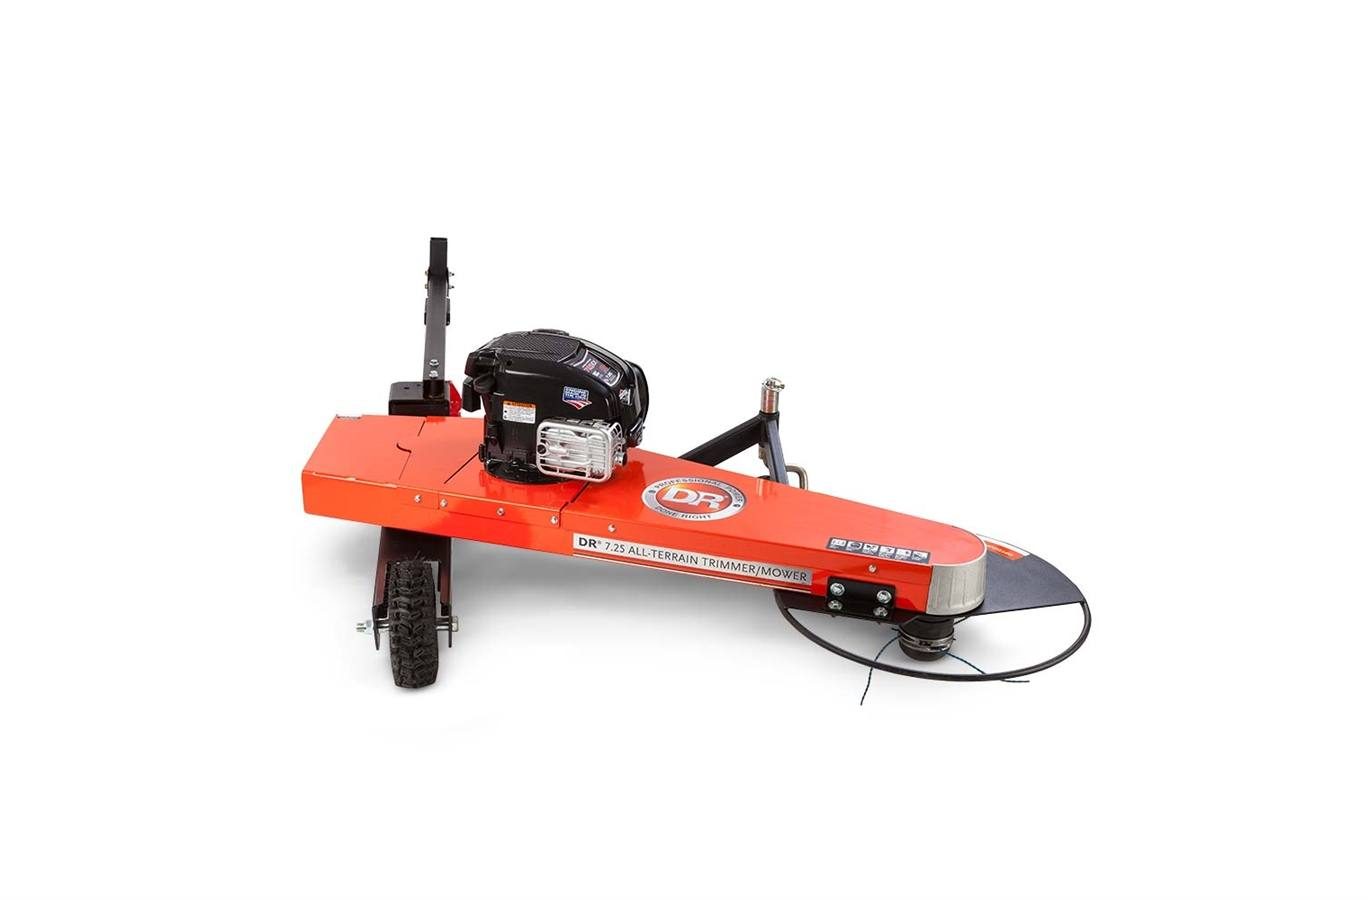 TRM72AMN DR Trimmer/Mower (Tow-Behind)